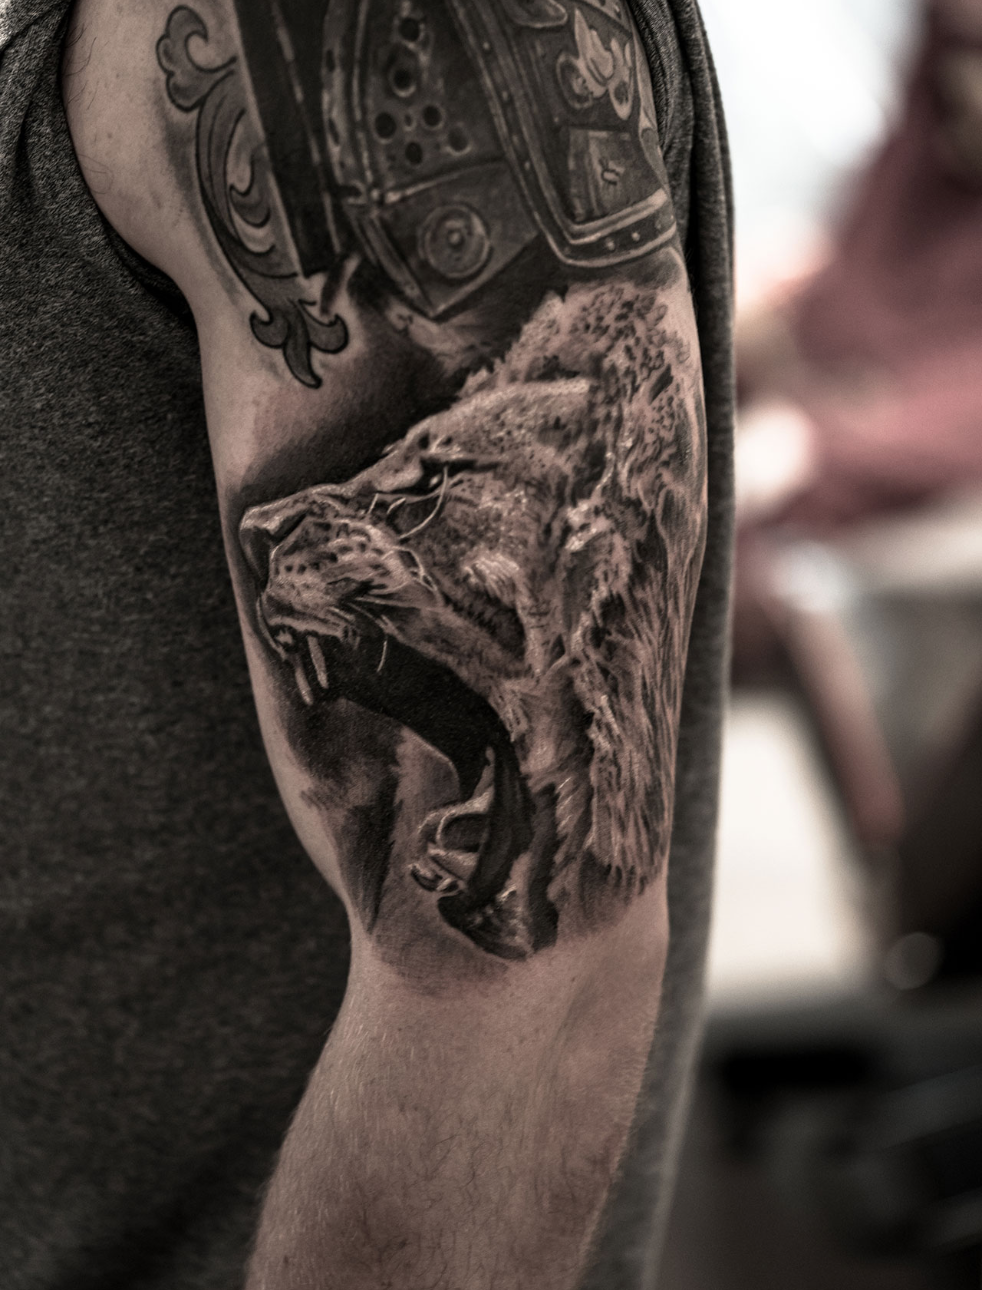 Photorealistic lion tattoo by Scoot Ink